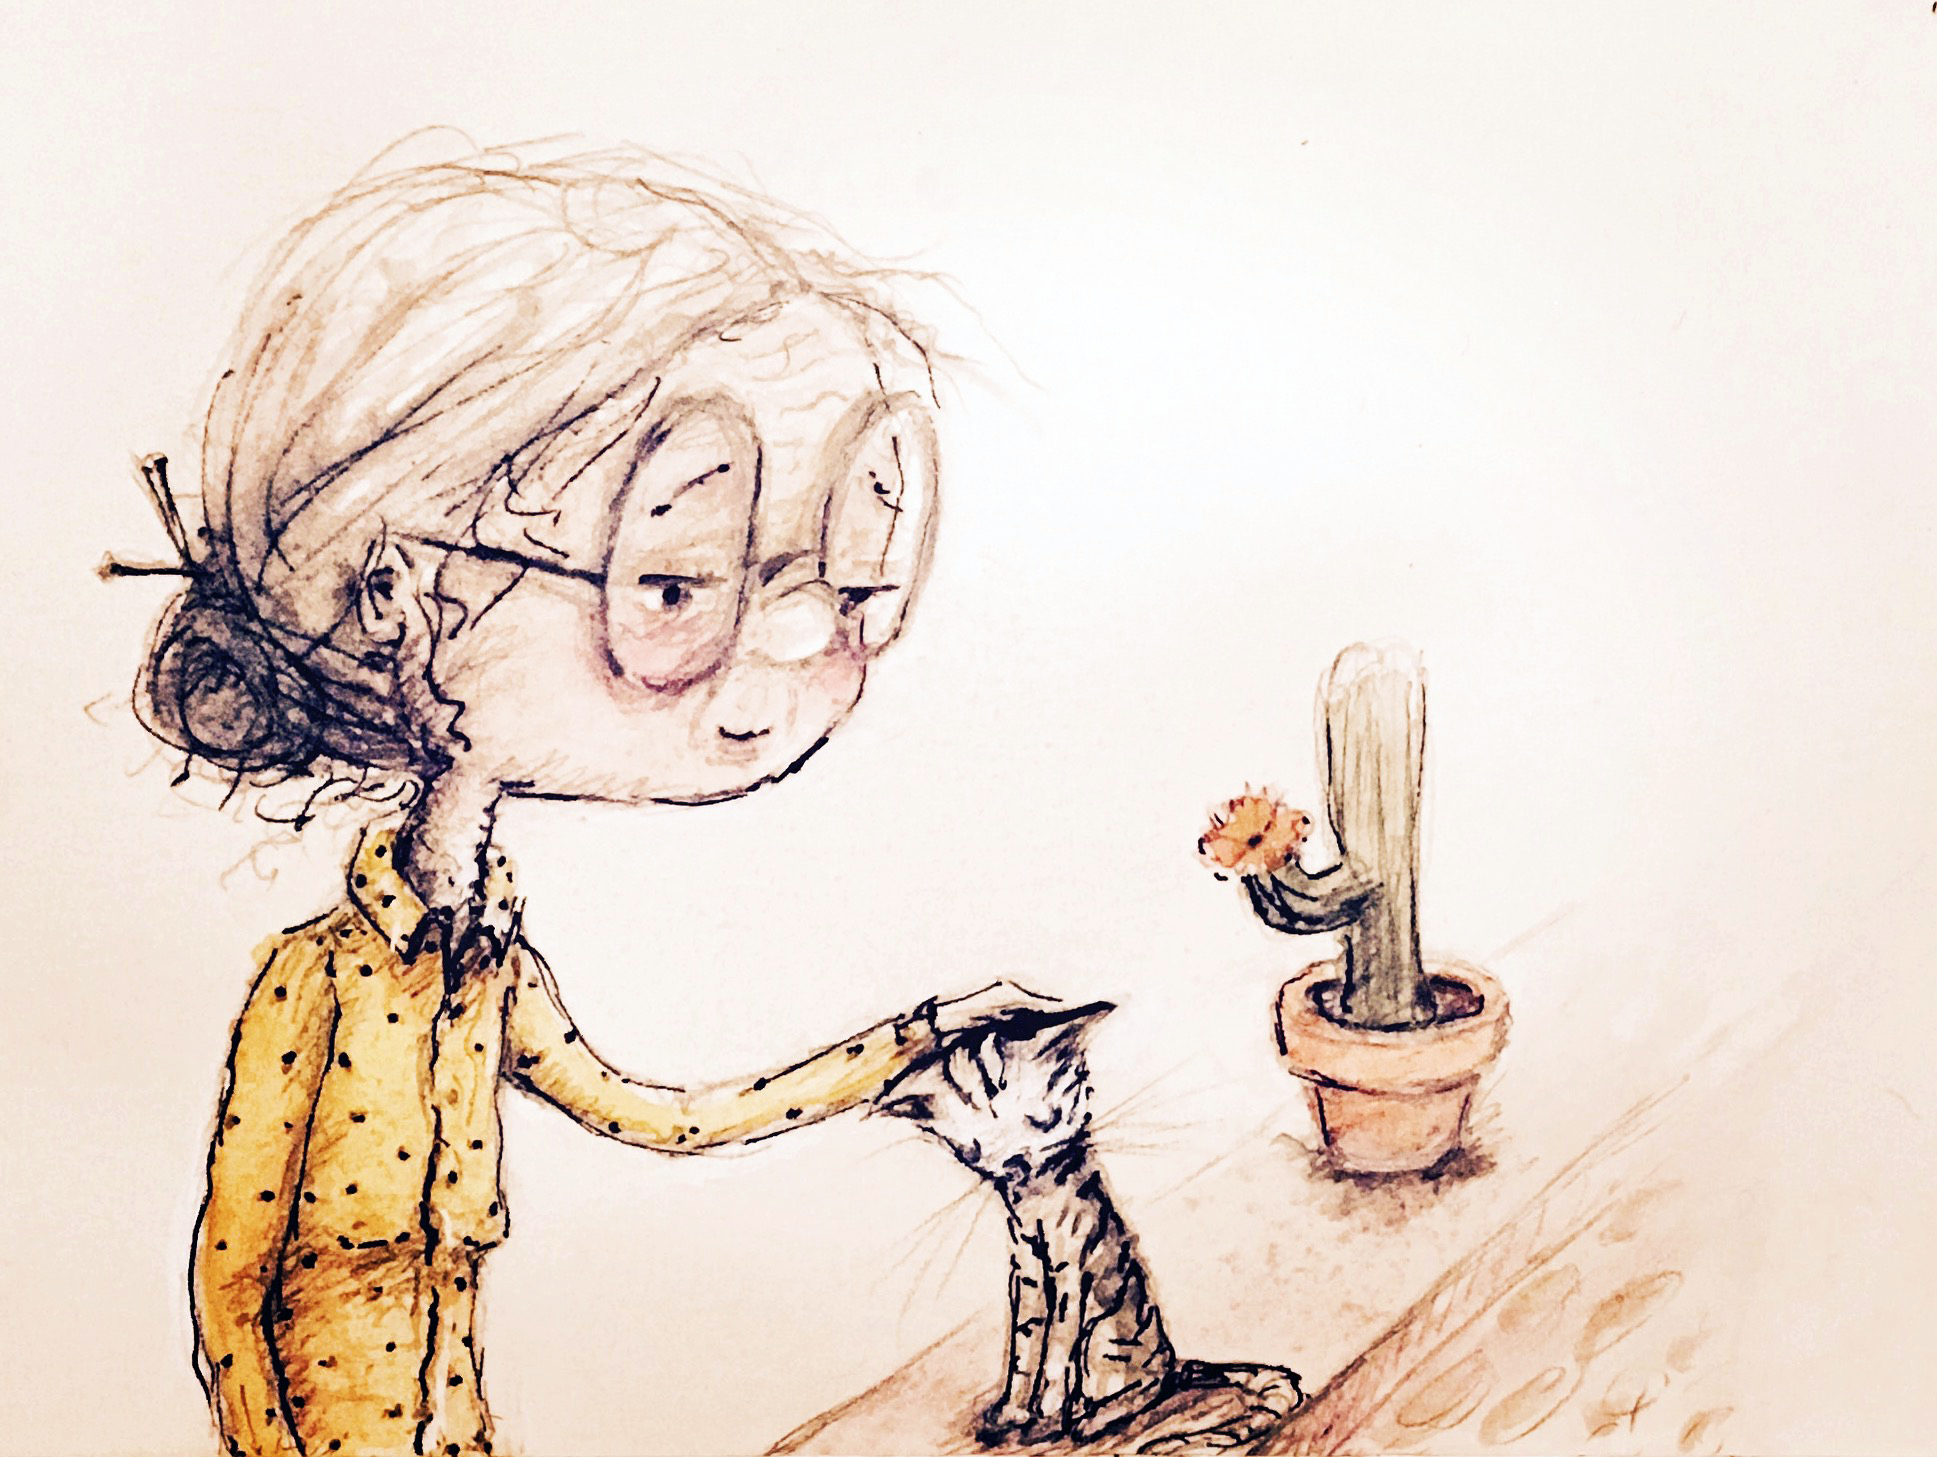 Cat and cactus